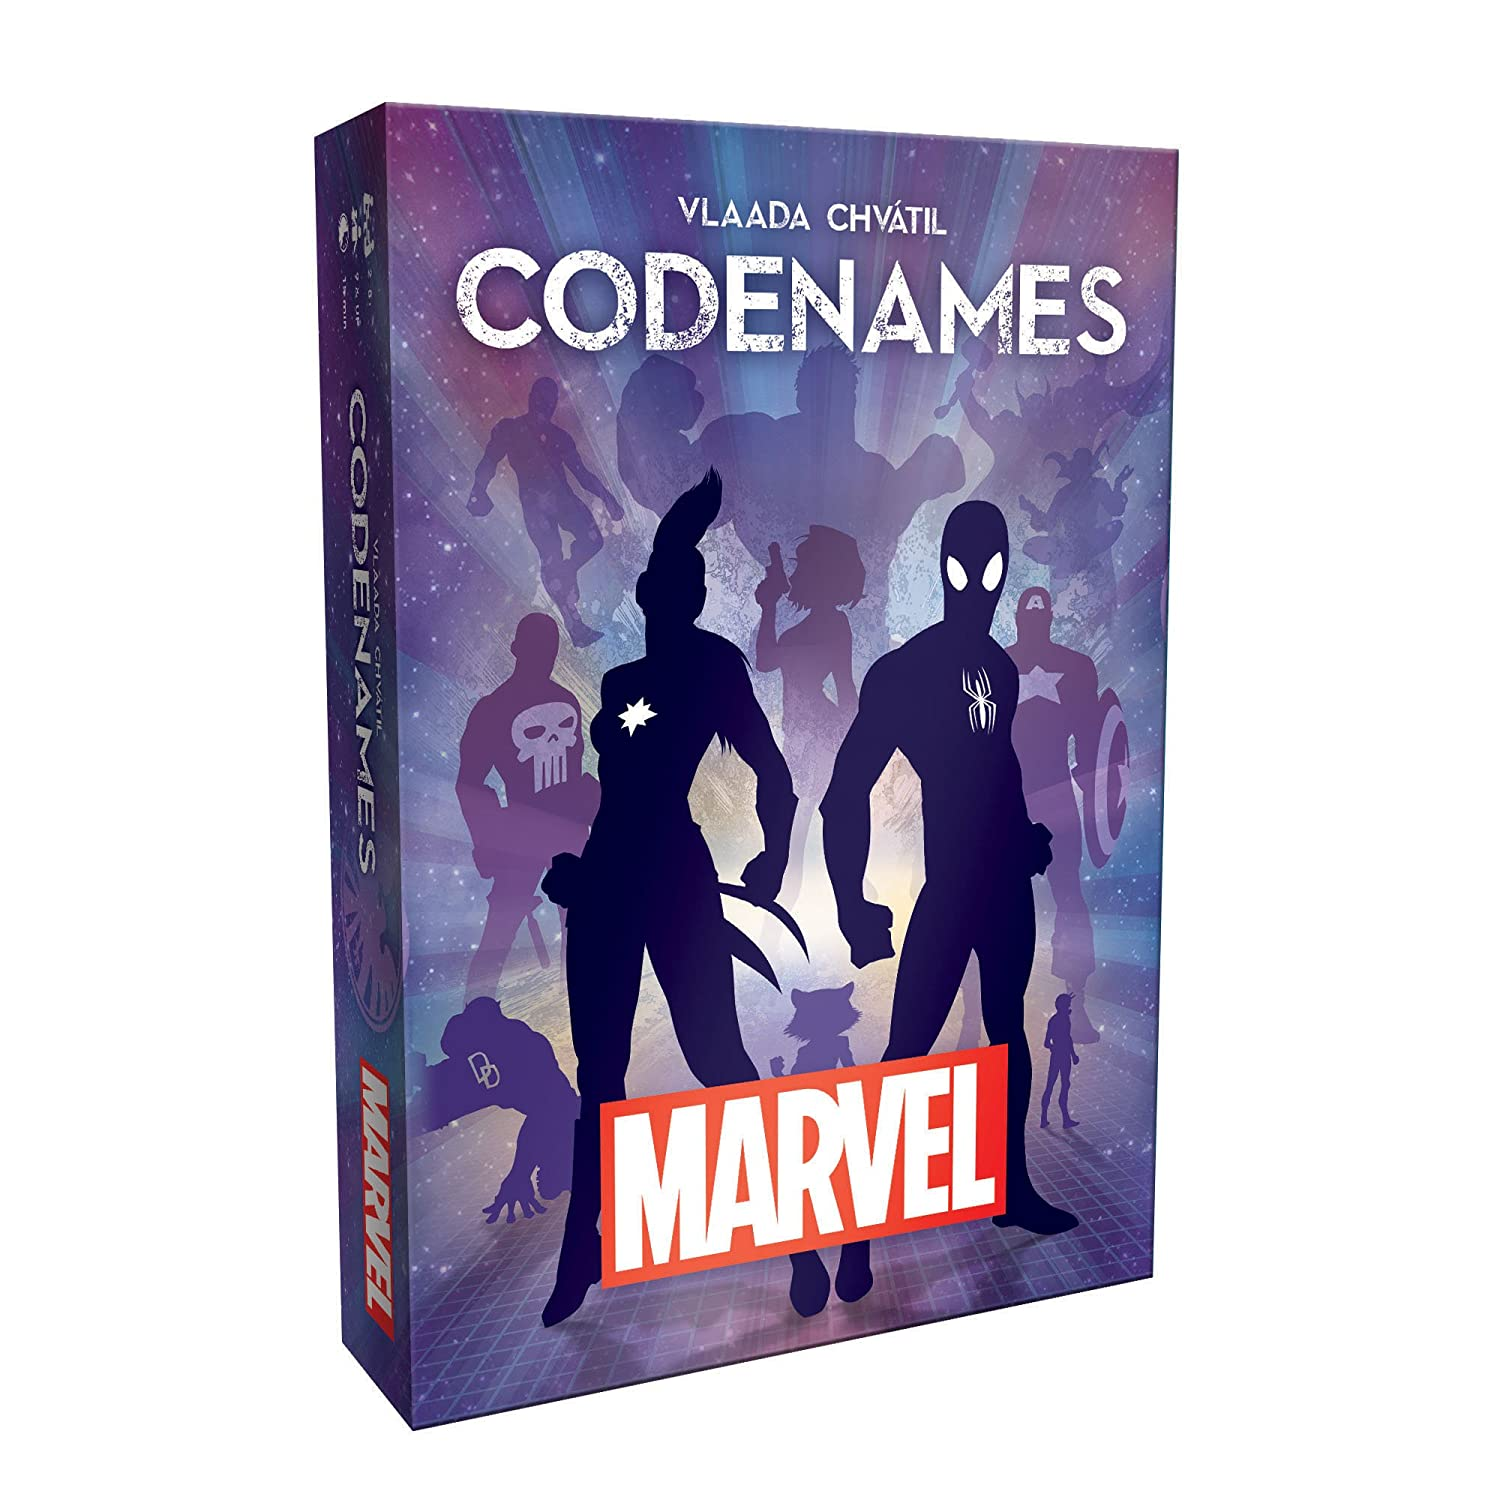 Codigo Secreto Marvelhttps://amzn.to/2BXWLU8